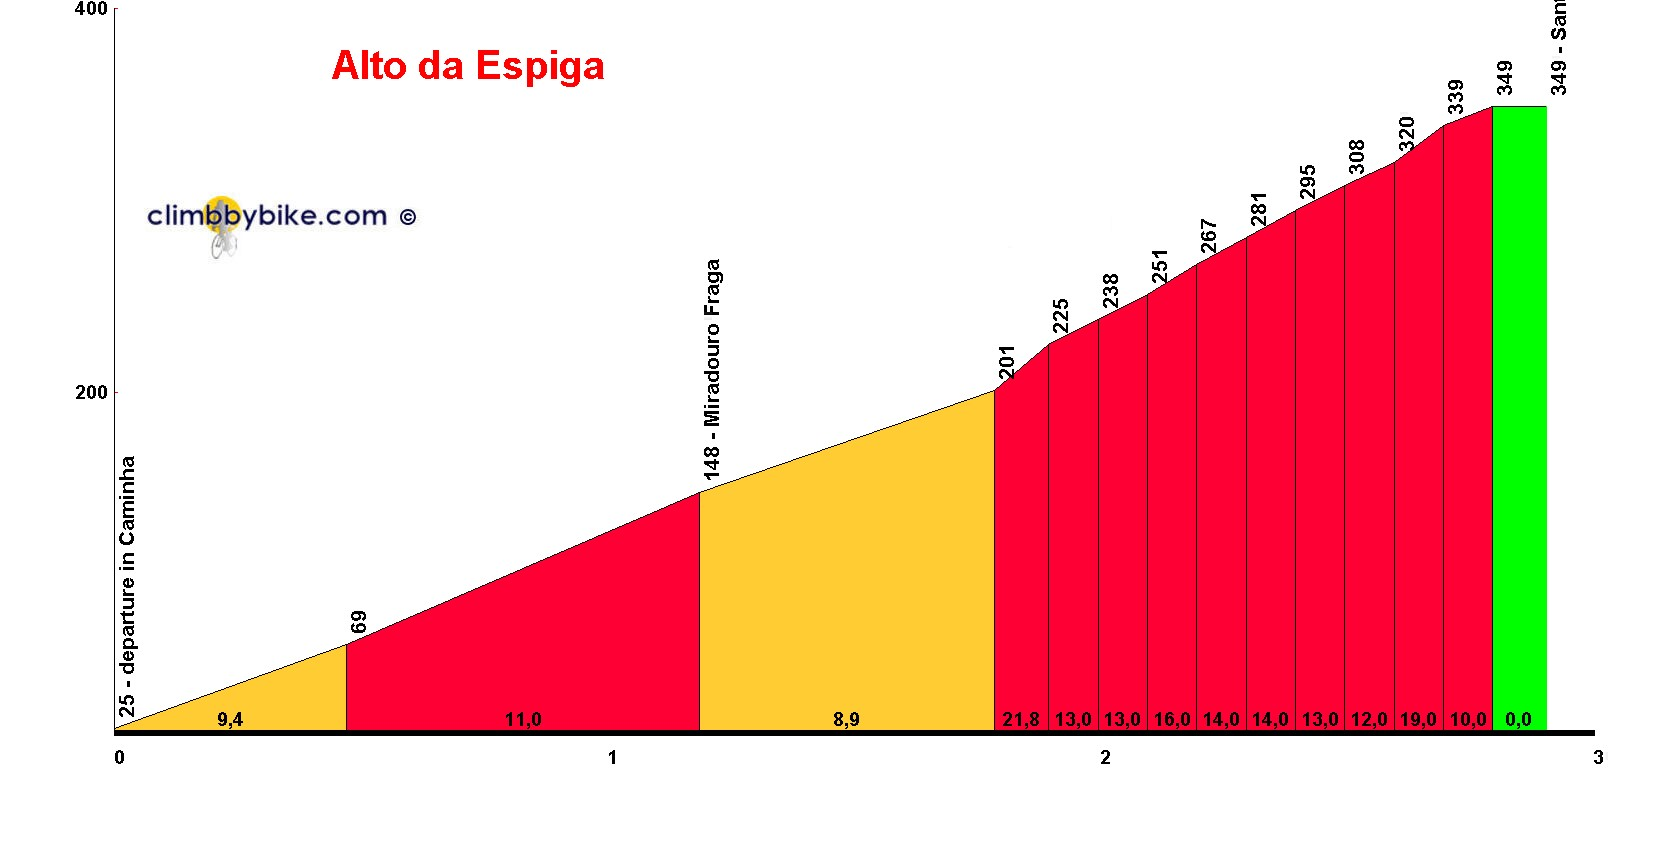 Elevation profile for Alto da Espiga